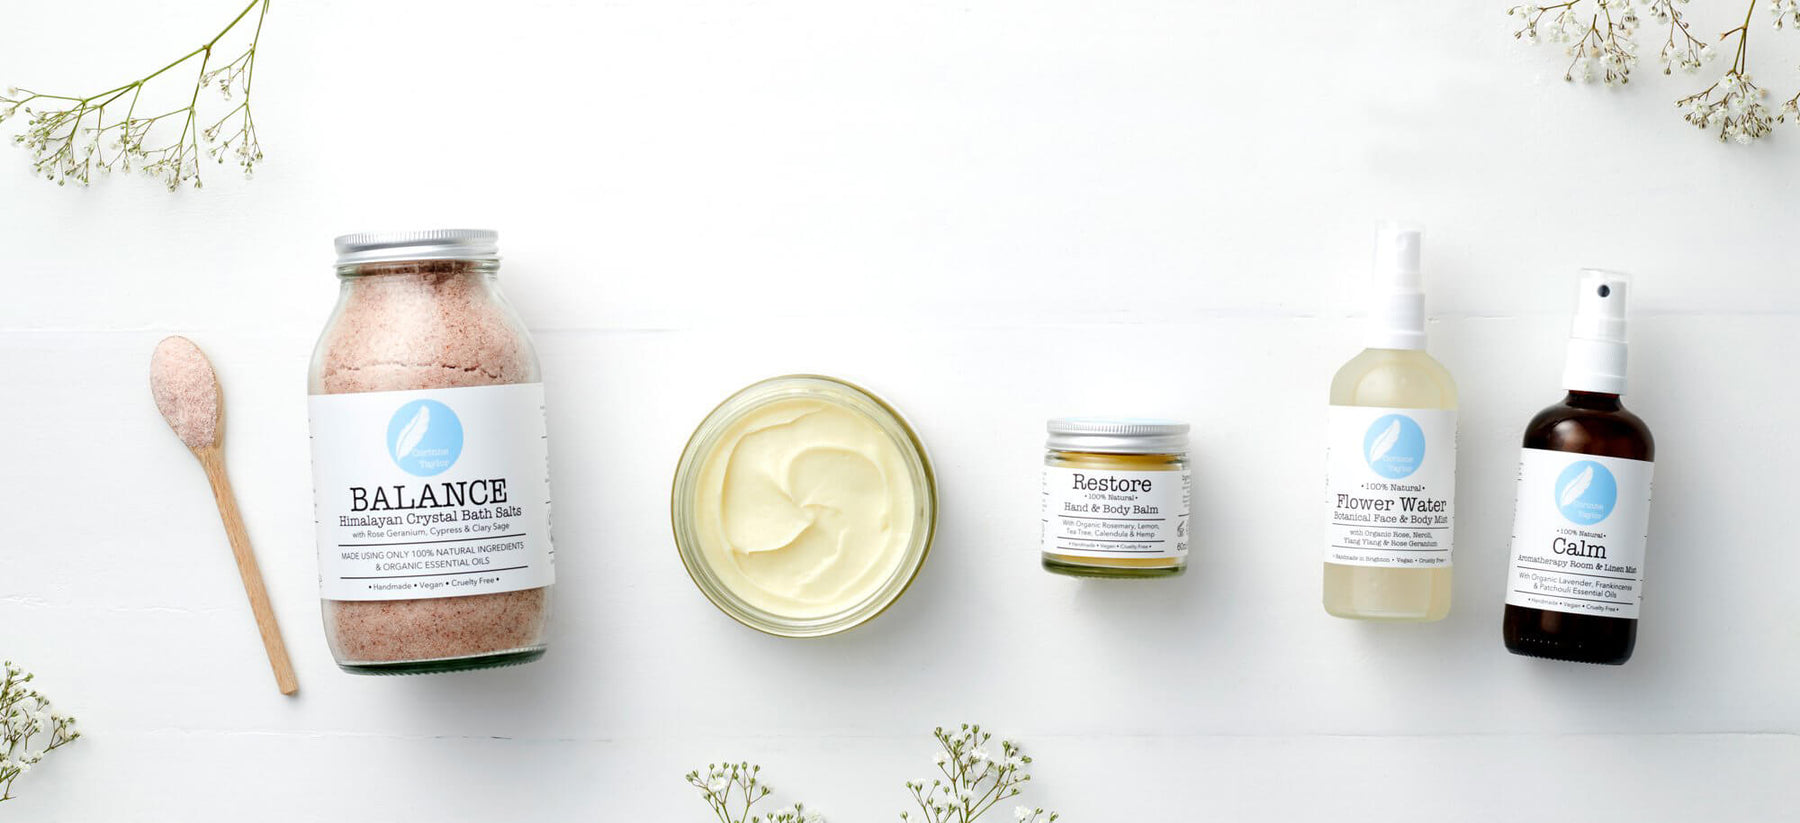 The Ideal Sunday - Corinne Taylor - Planted Based Cruelty Free Skin Care